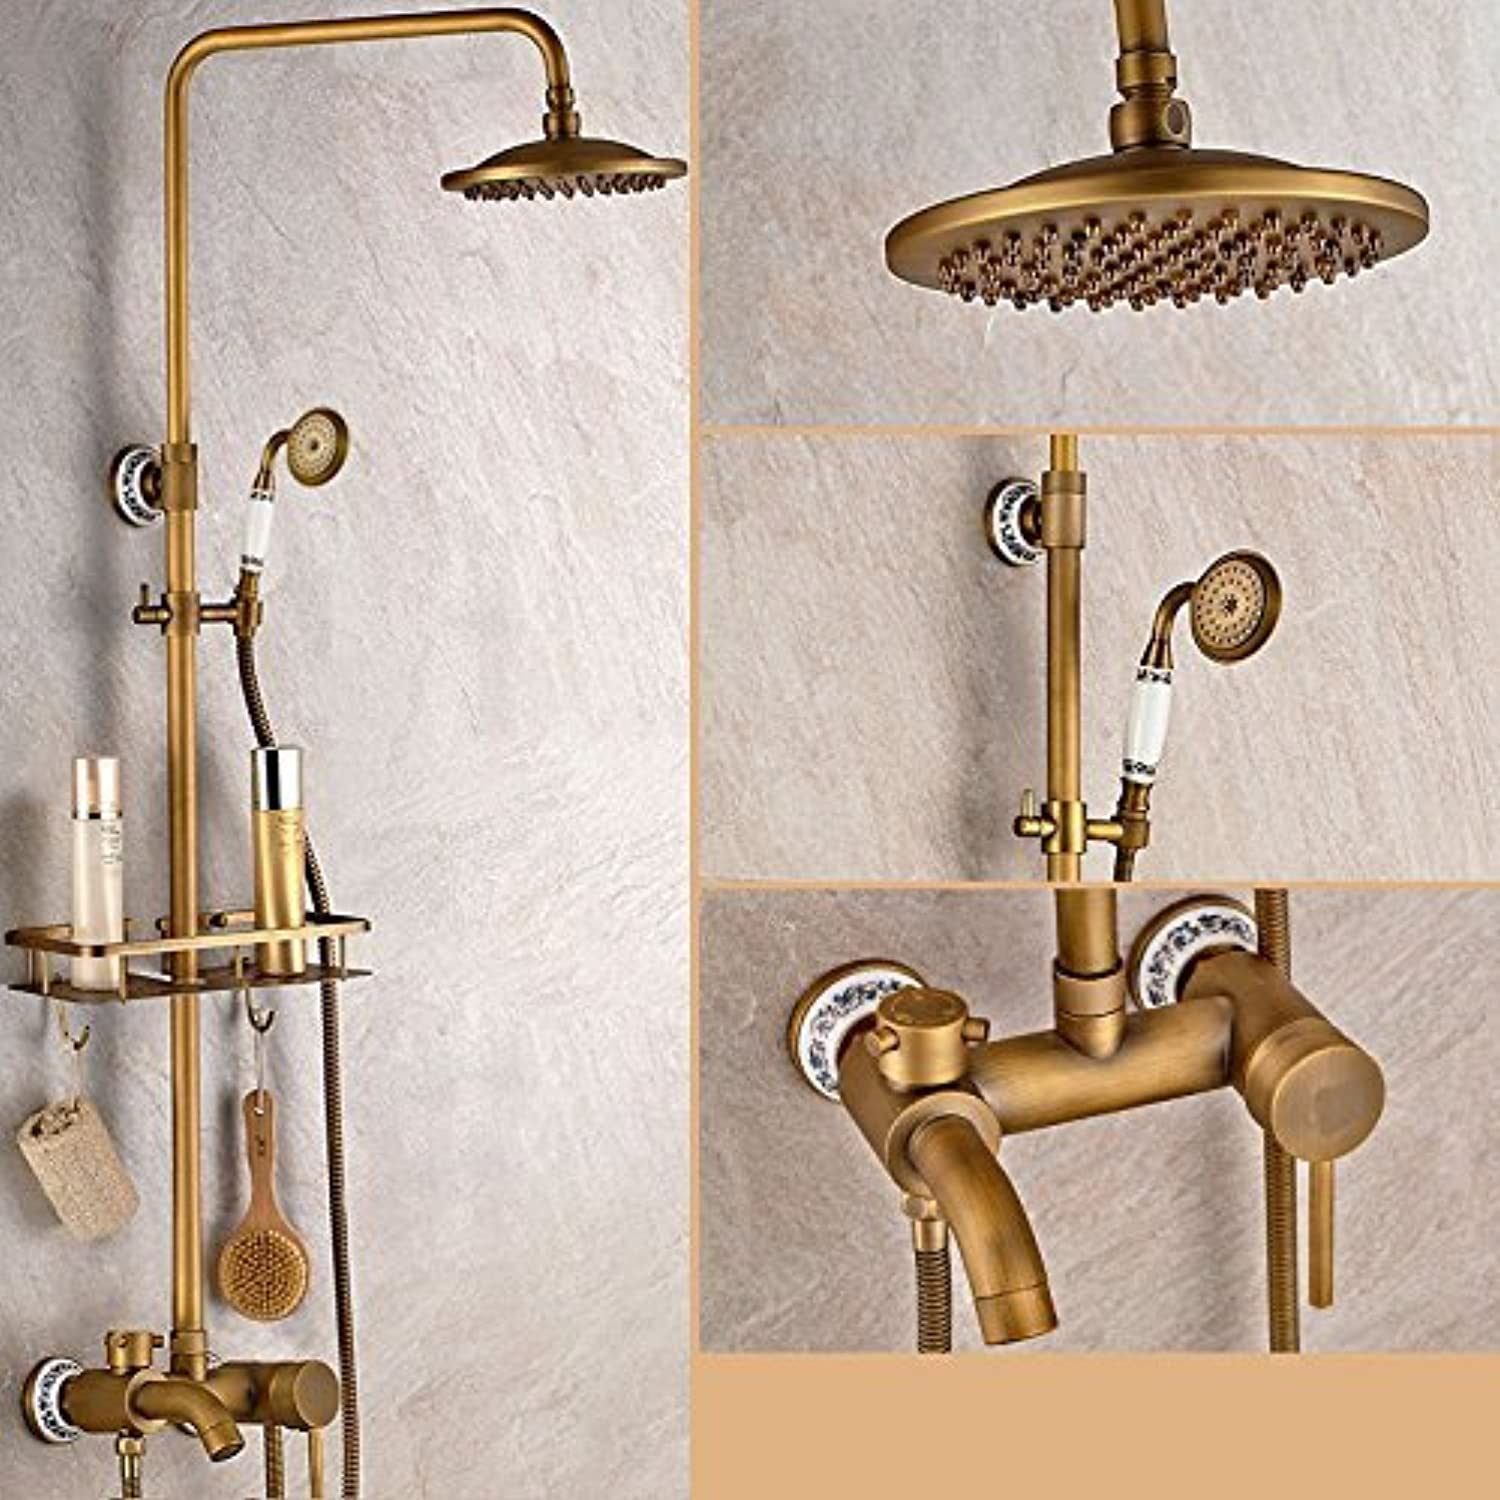 Wall Hanging Drawing Shower Bath Copper Full Ceramic Elevator Shower Function Shower